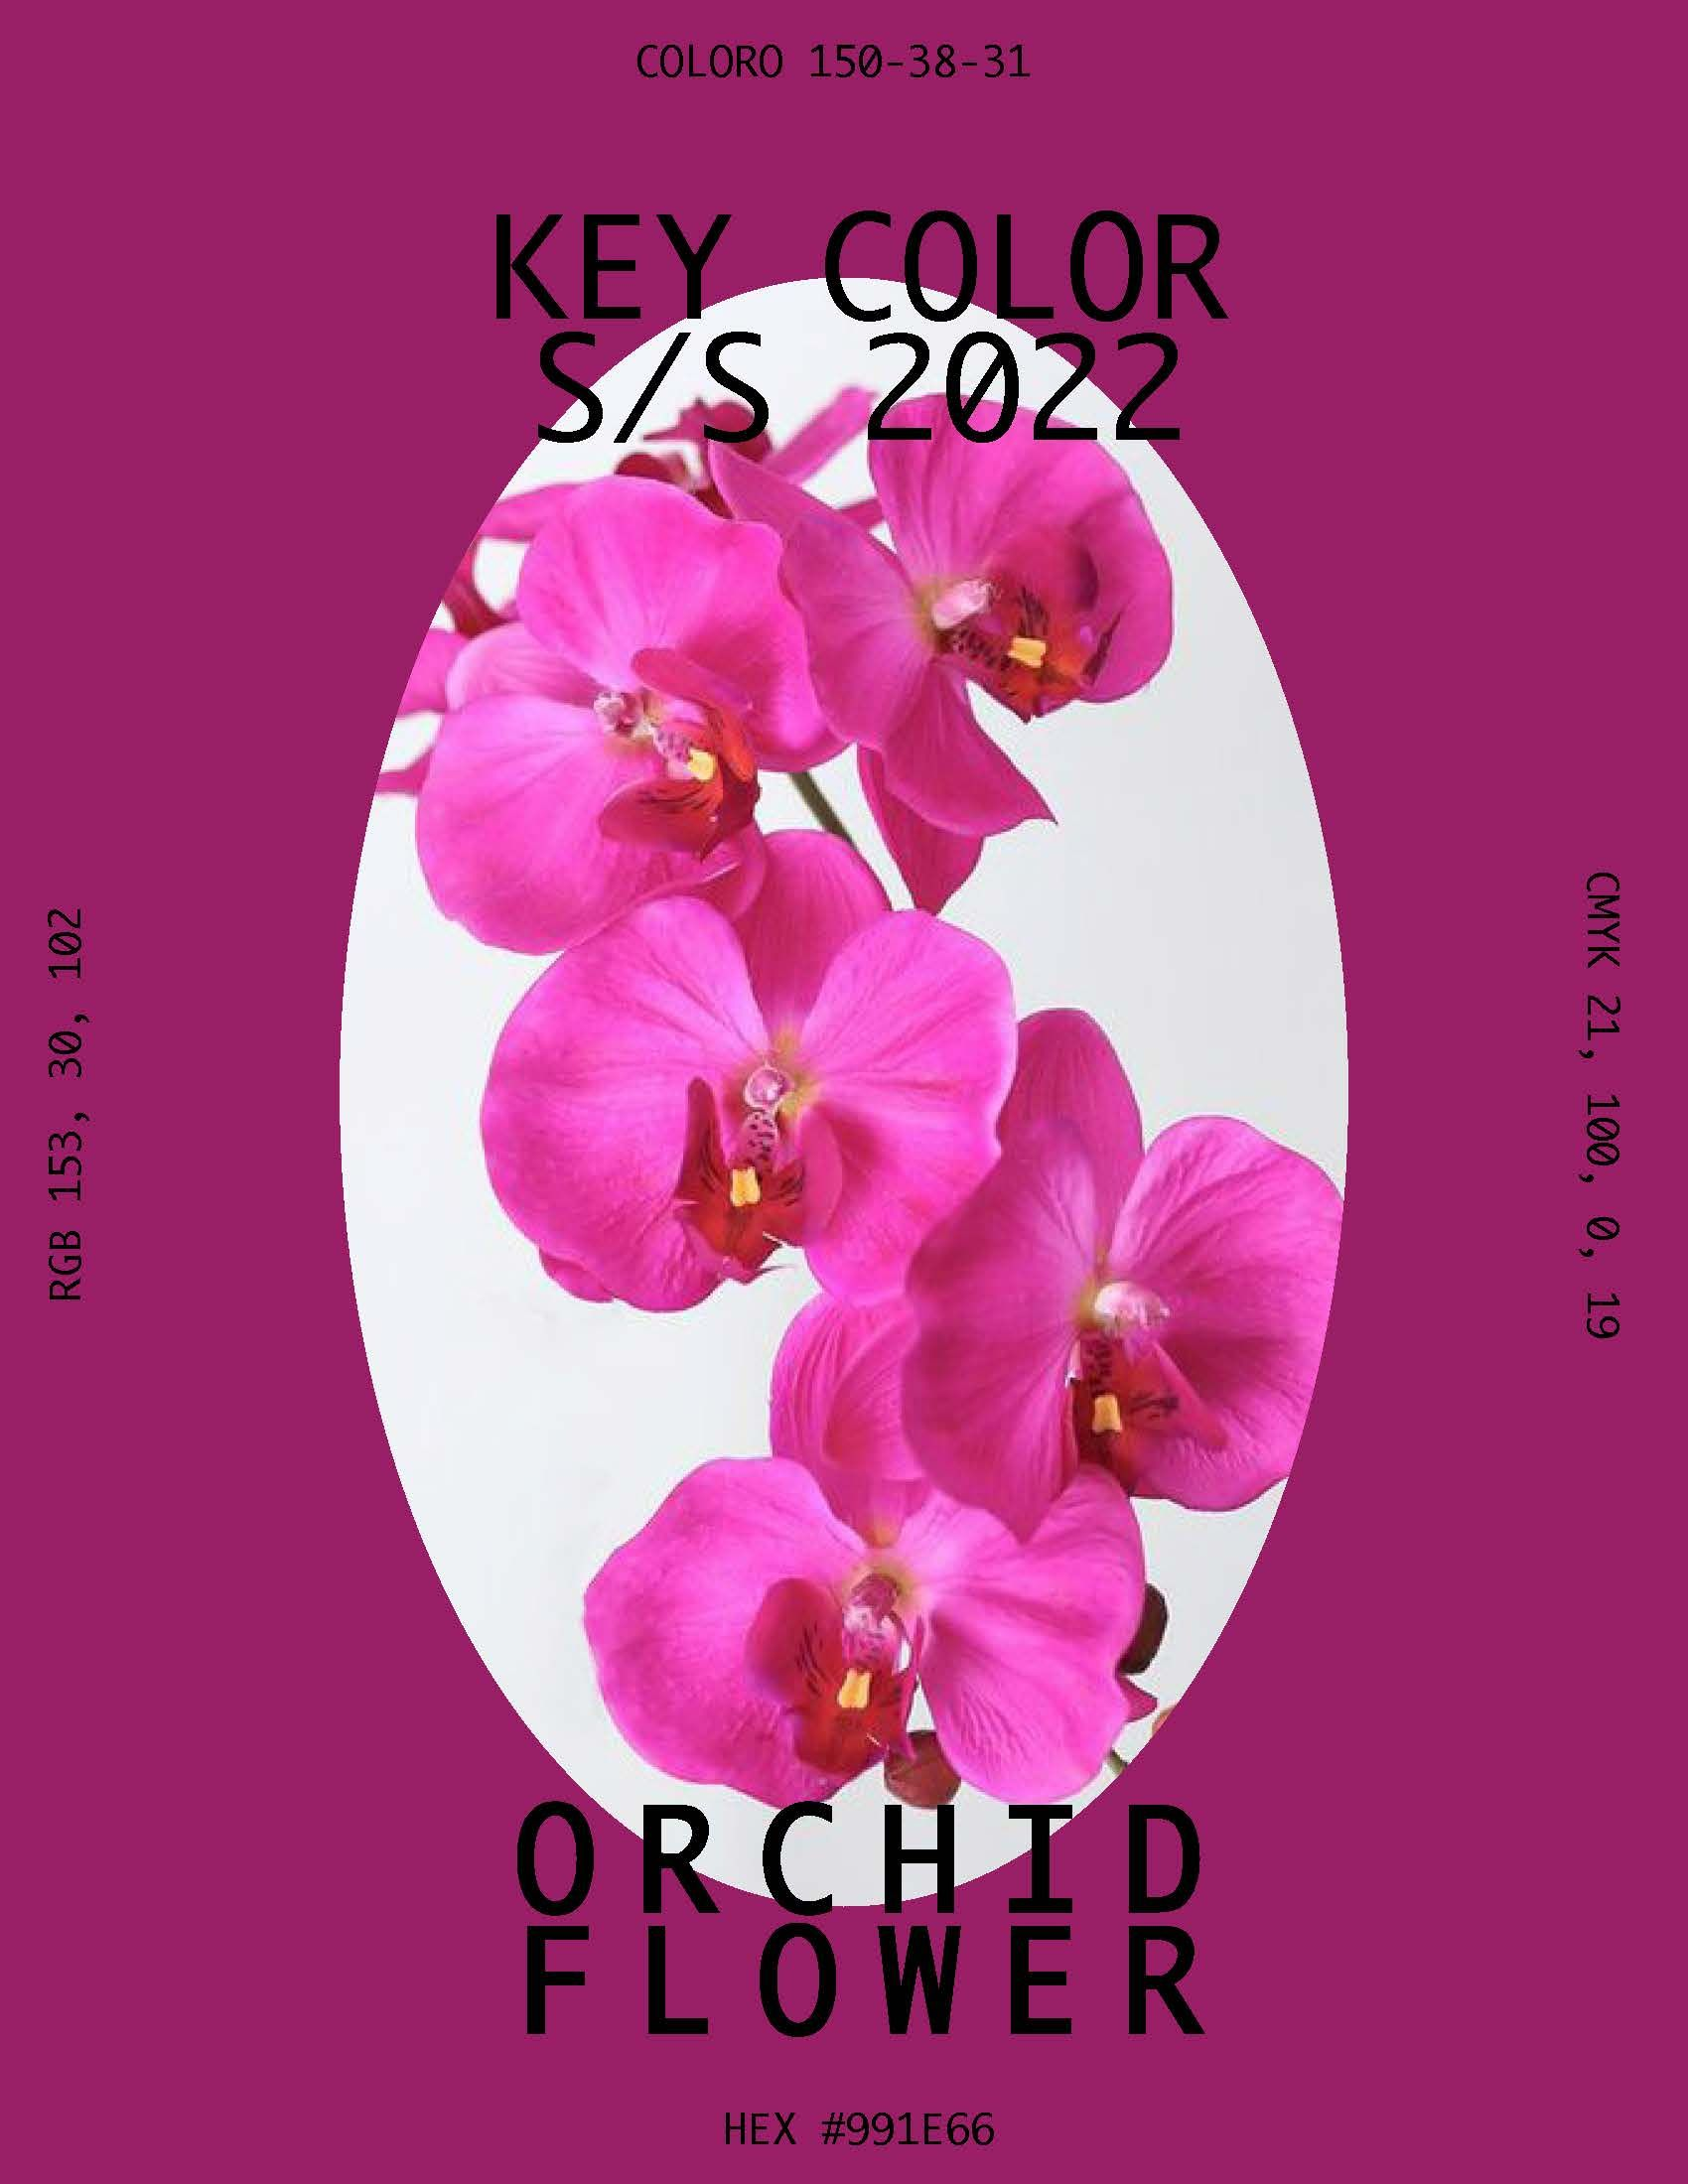 S/S 2022 Key Color Orchid Flower in 2020 Print design